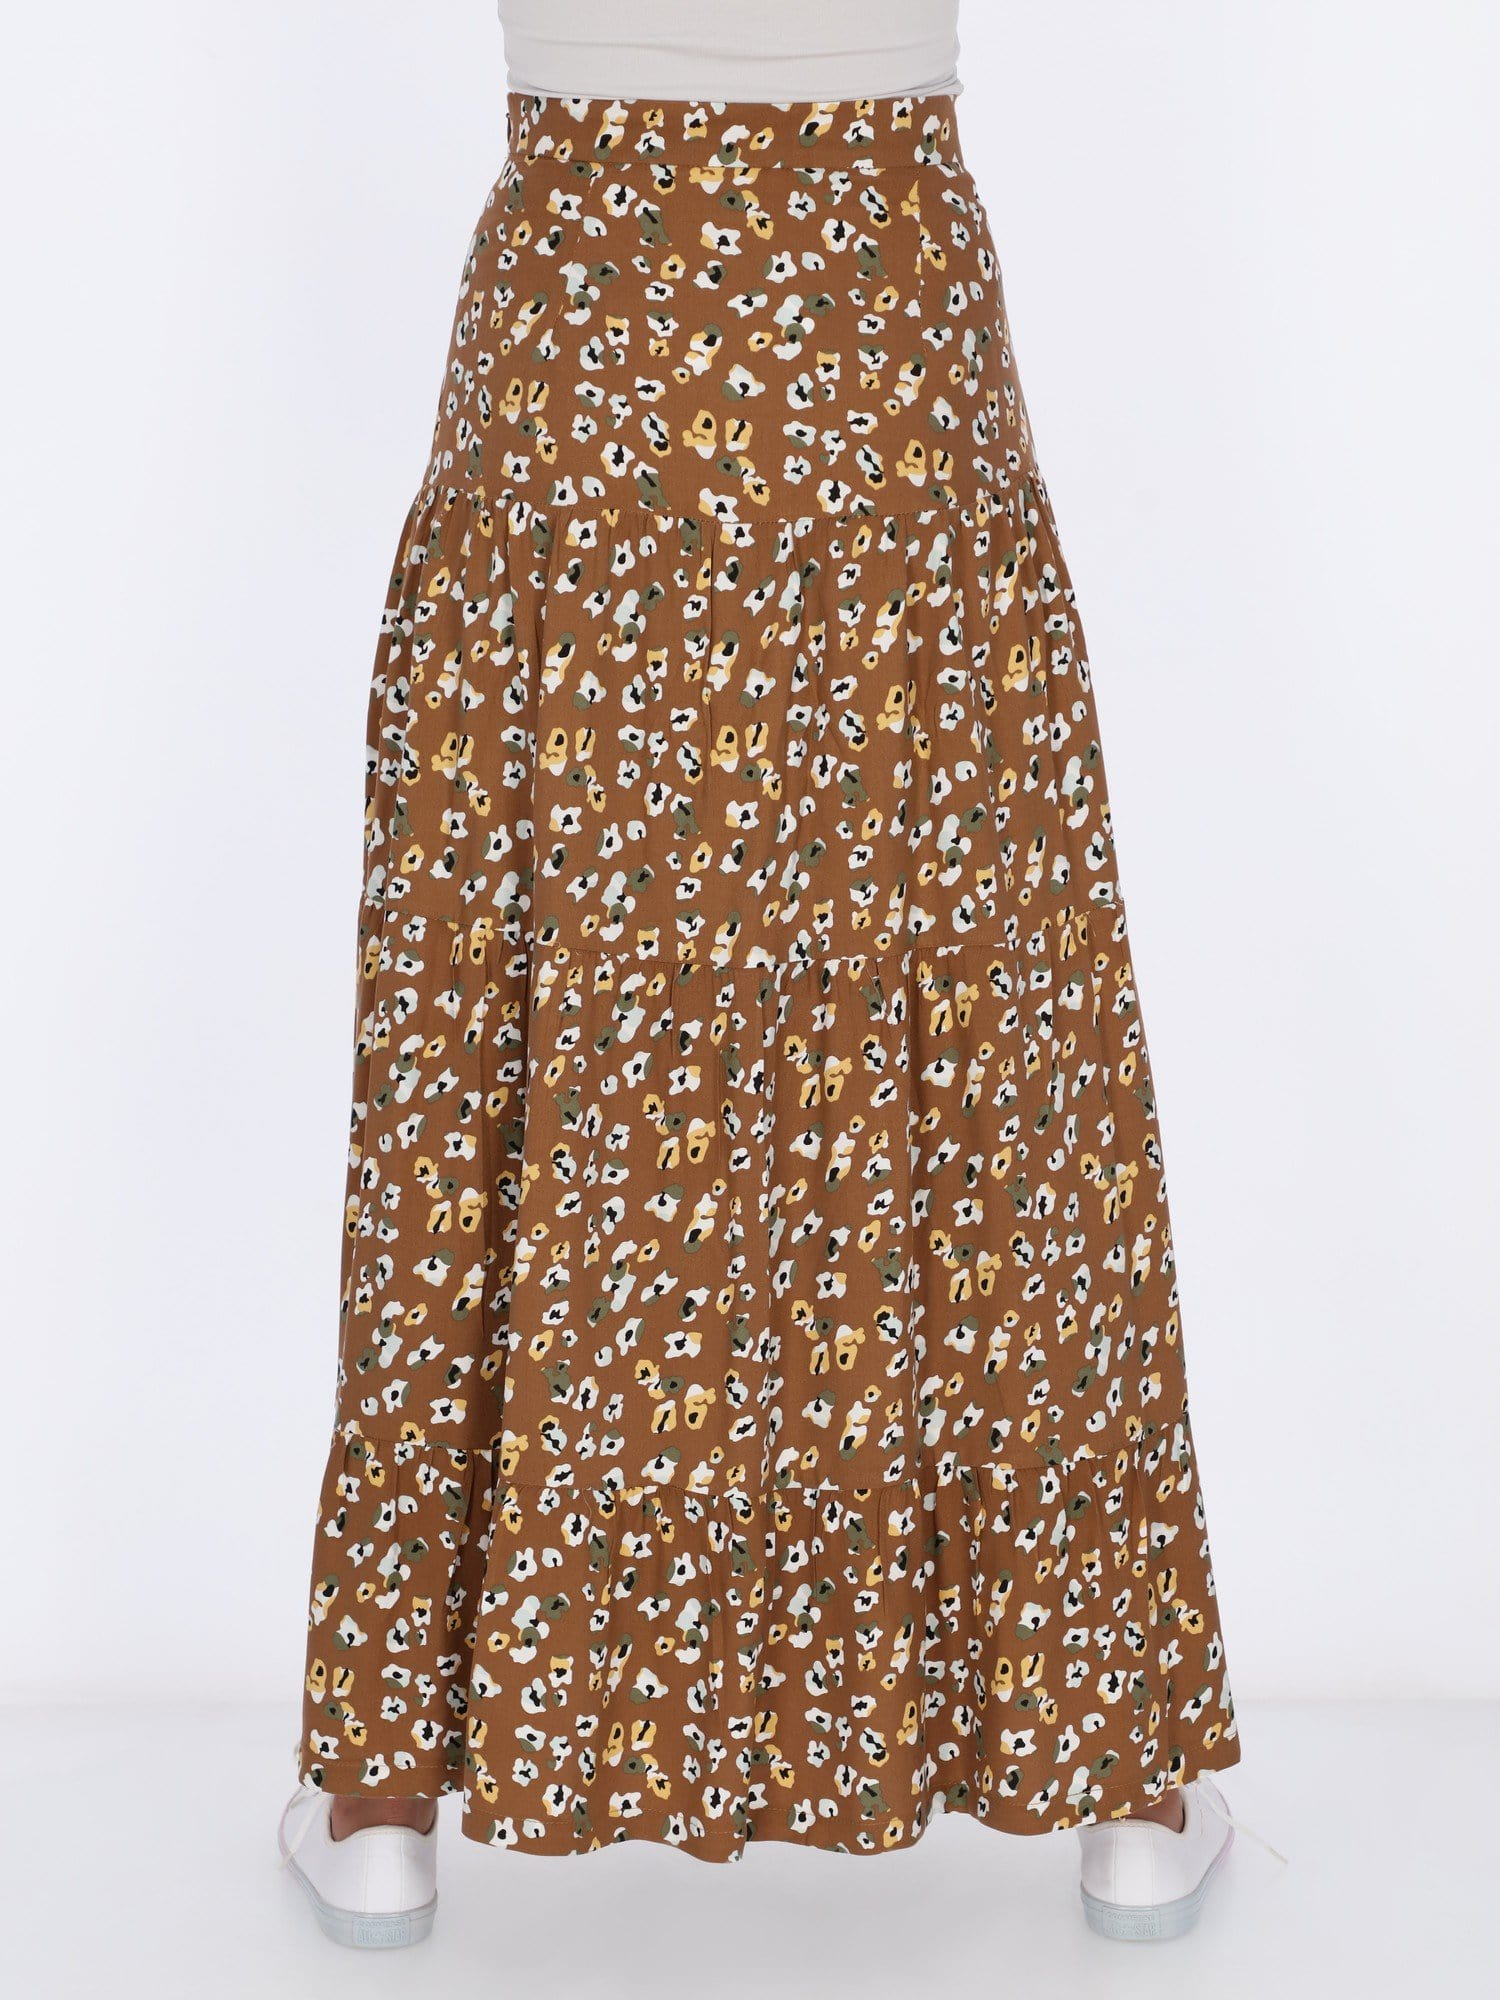 OR Skirts & Shorts Floral Maxi Skirt